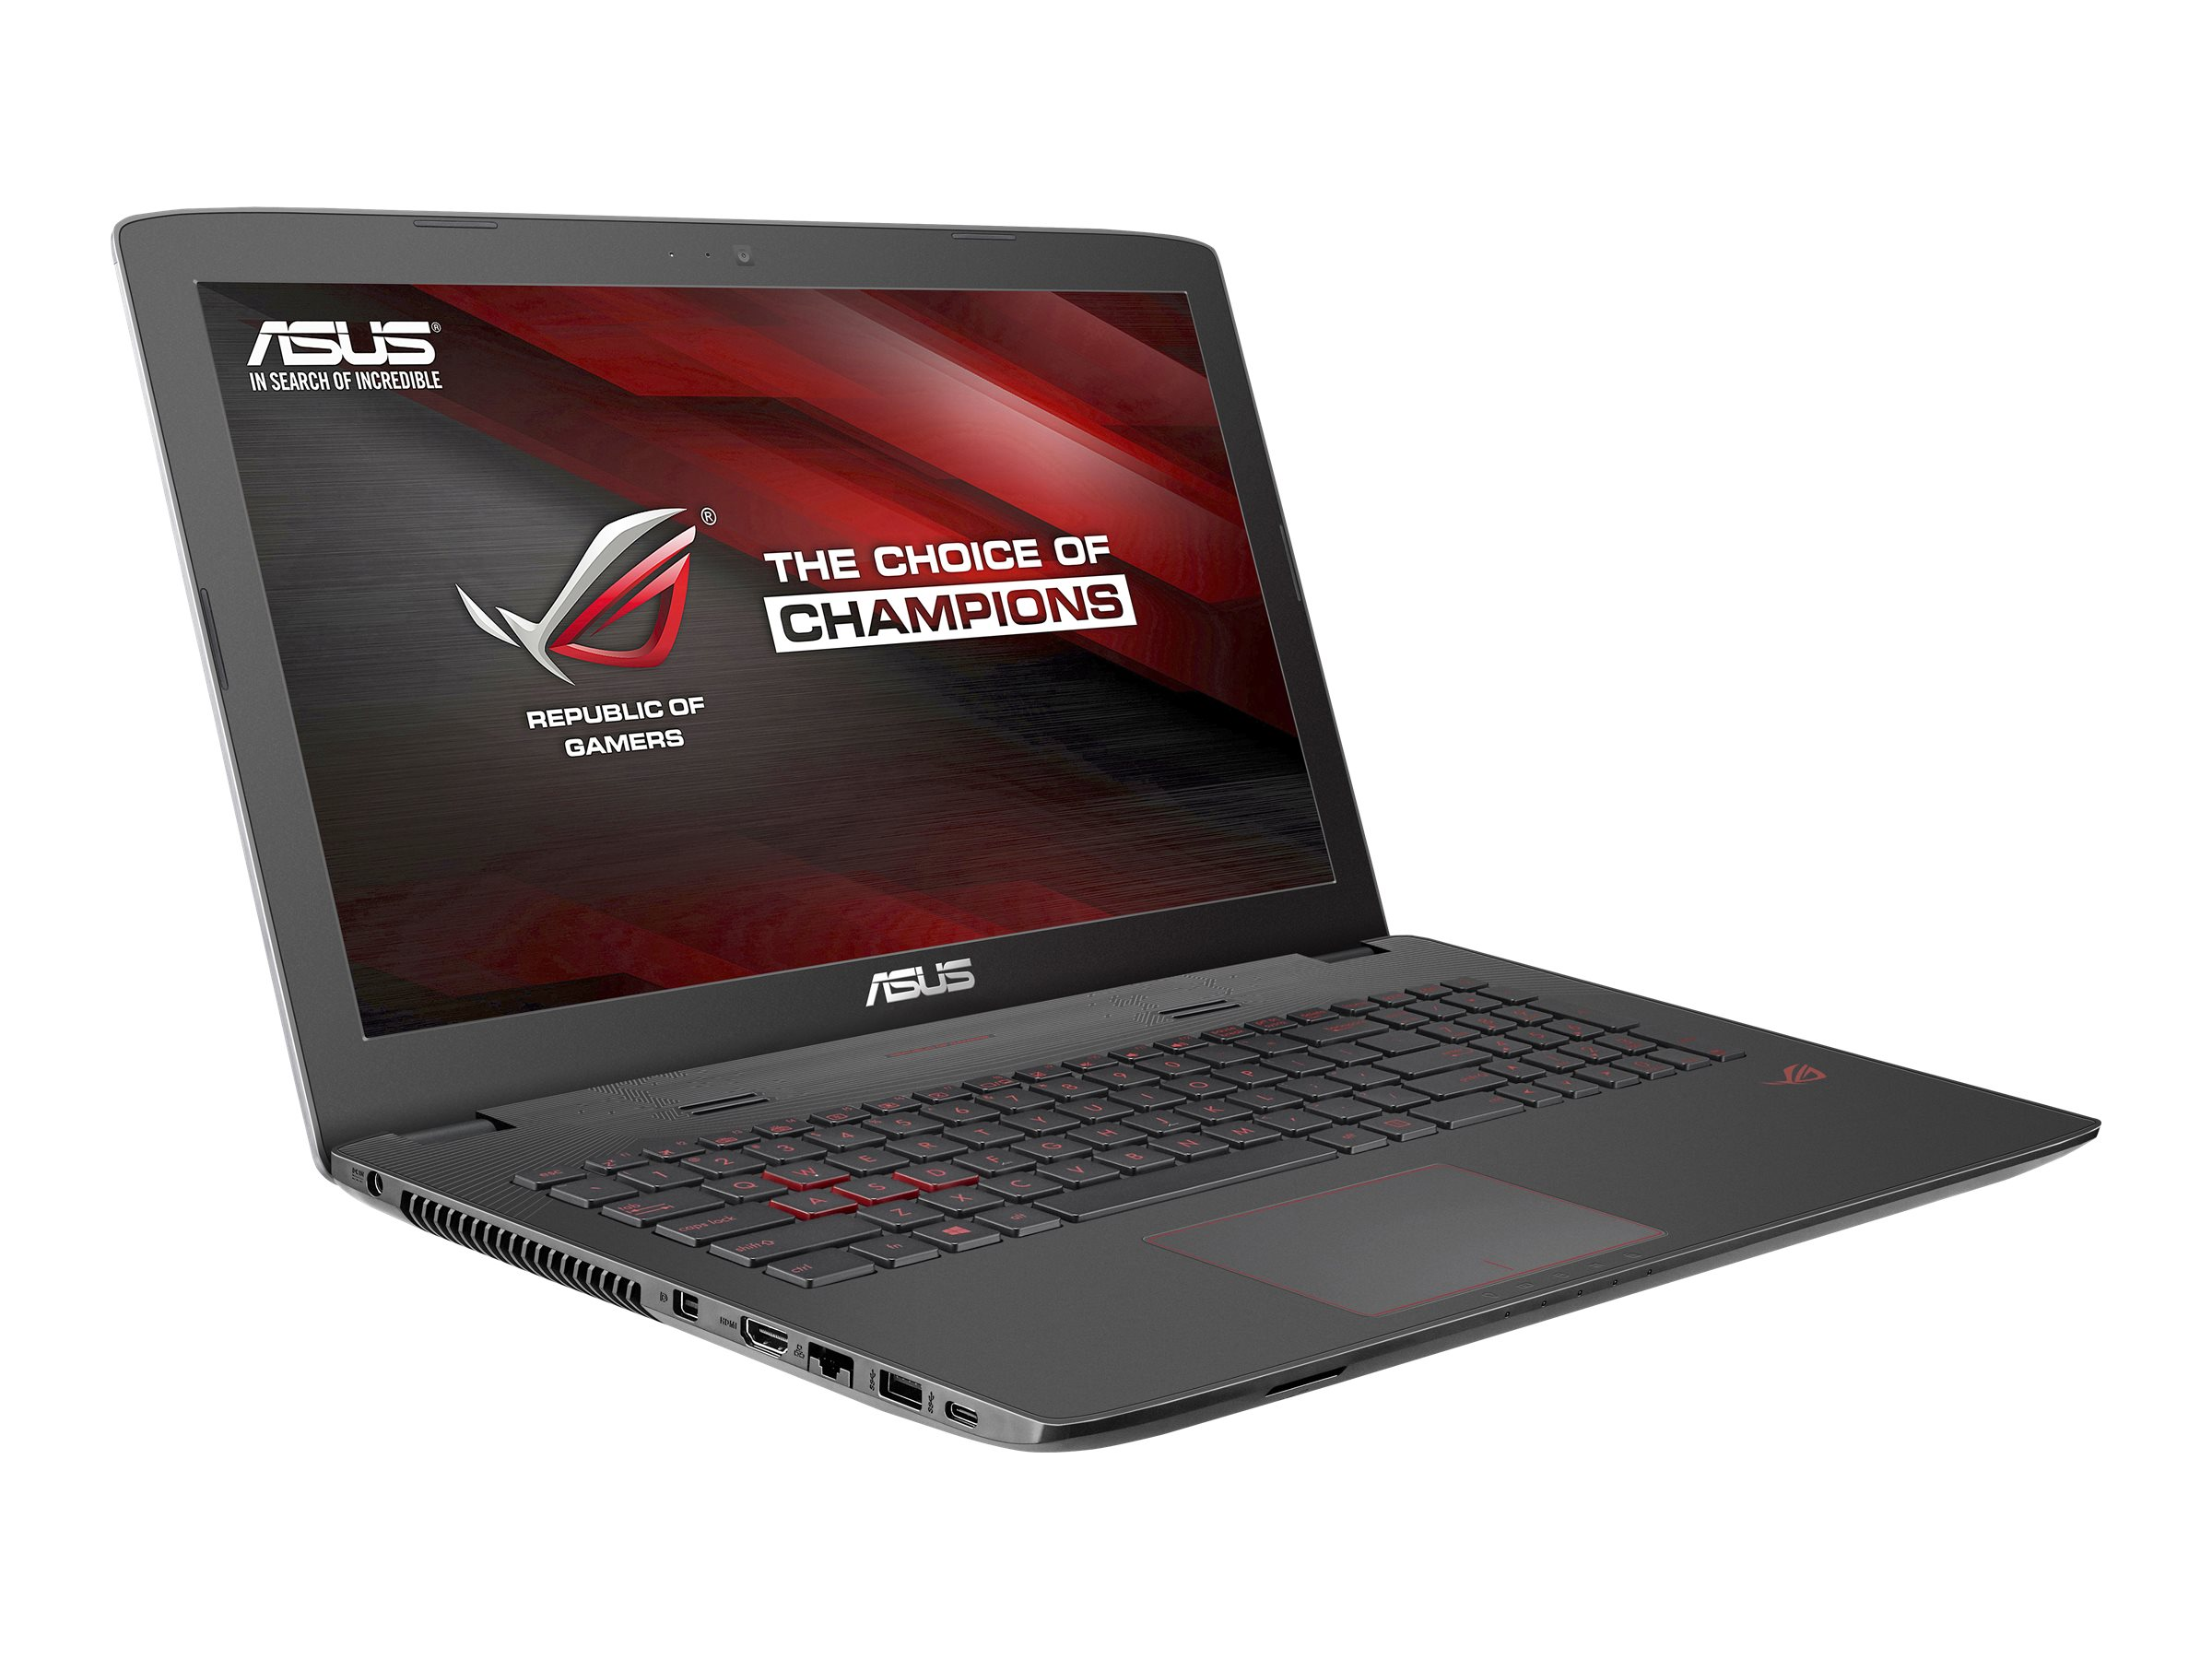 Asus GL752VW-DH74 Image 3